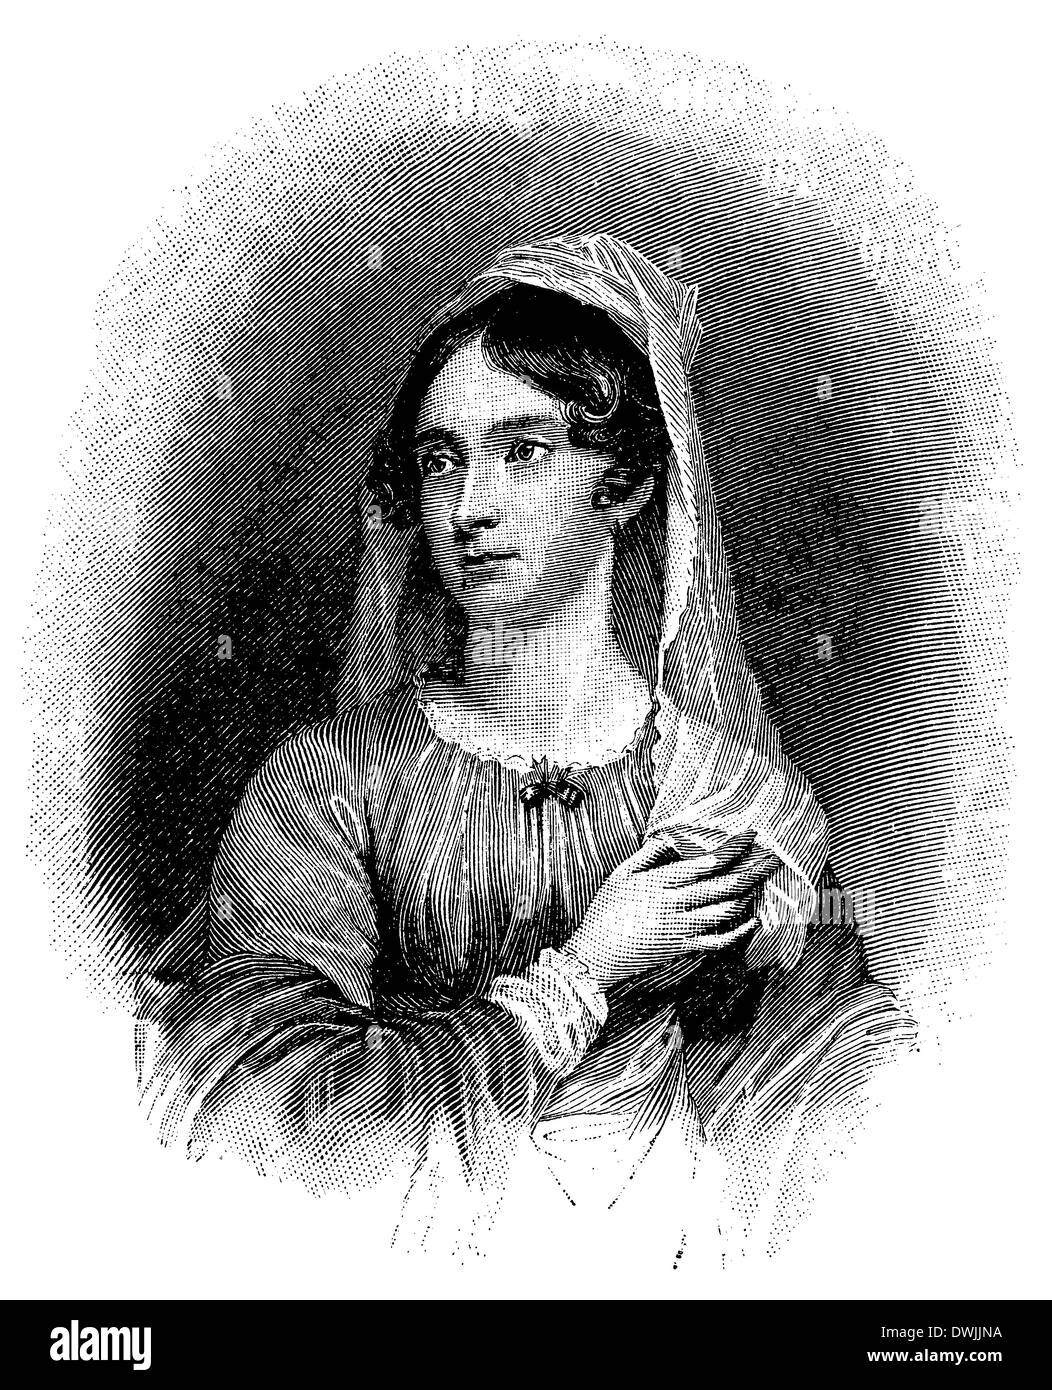 Anne Isabella Byron, Baroness Byron (born May 17, 1792, Seaham, Durham, died Mai 16, 1860, London), Lord Byron's wife. According to an engraving of W. Find - Stock Image